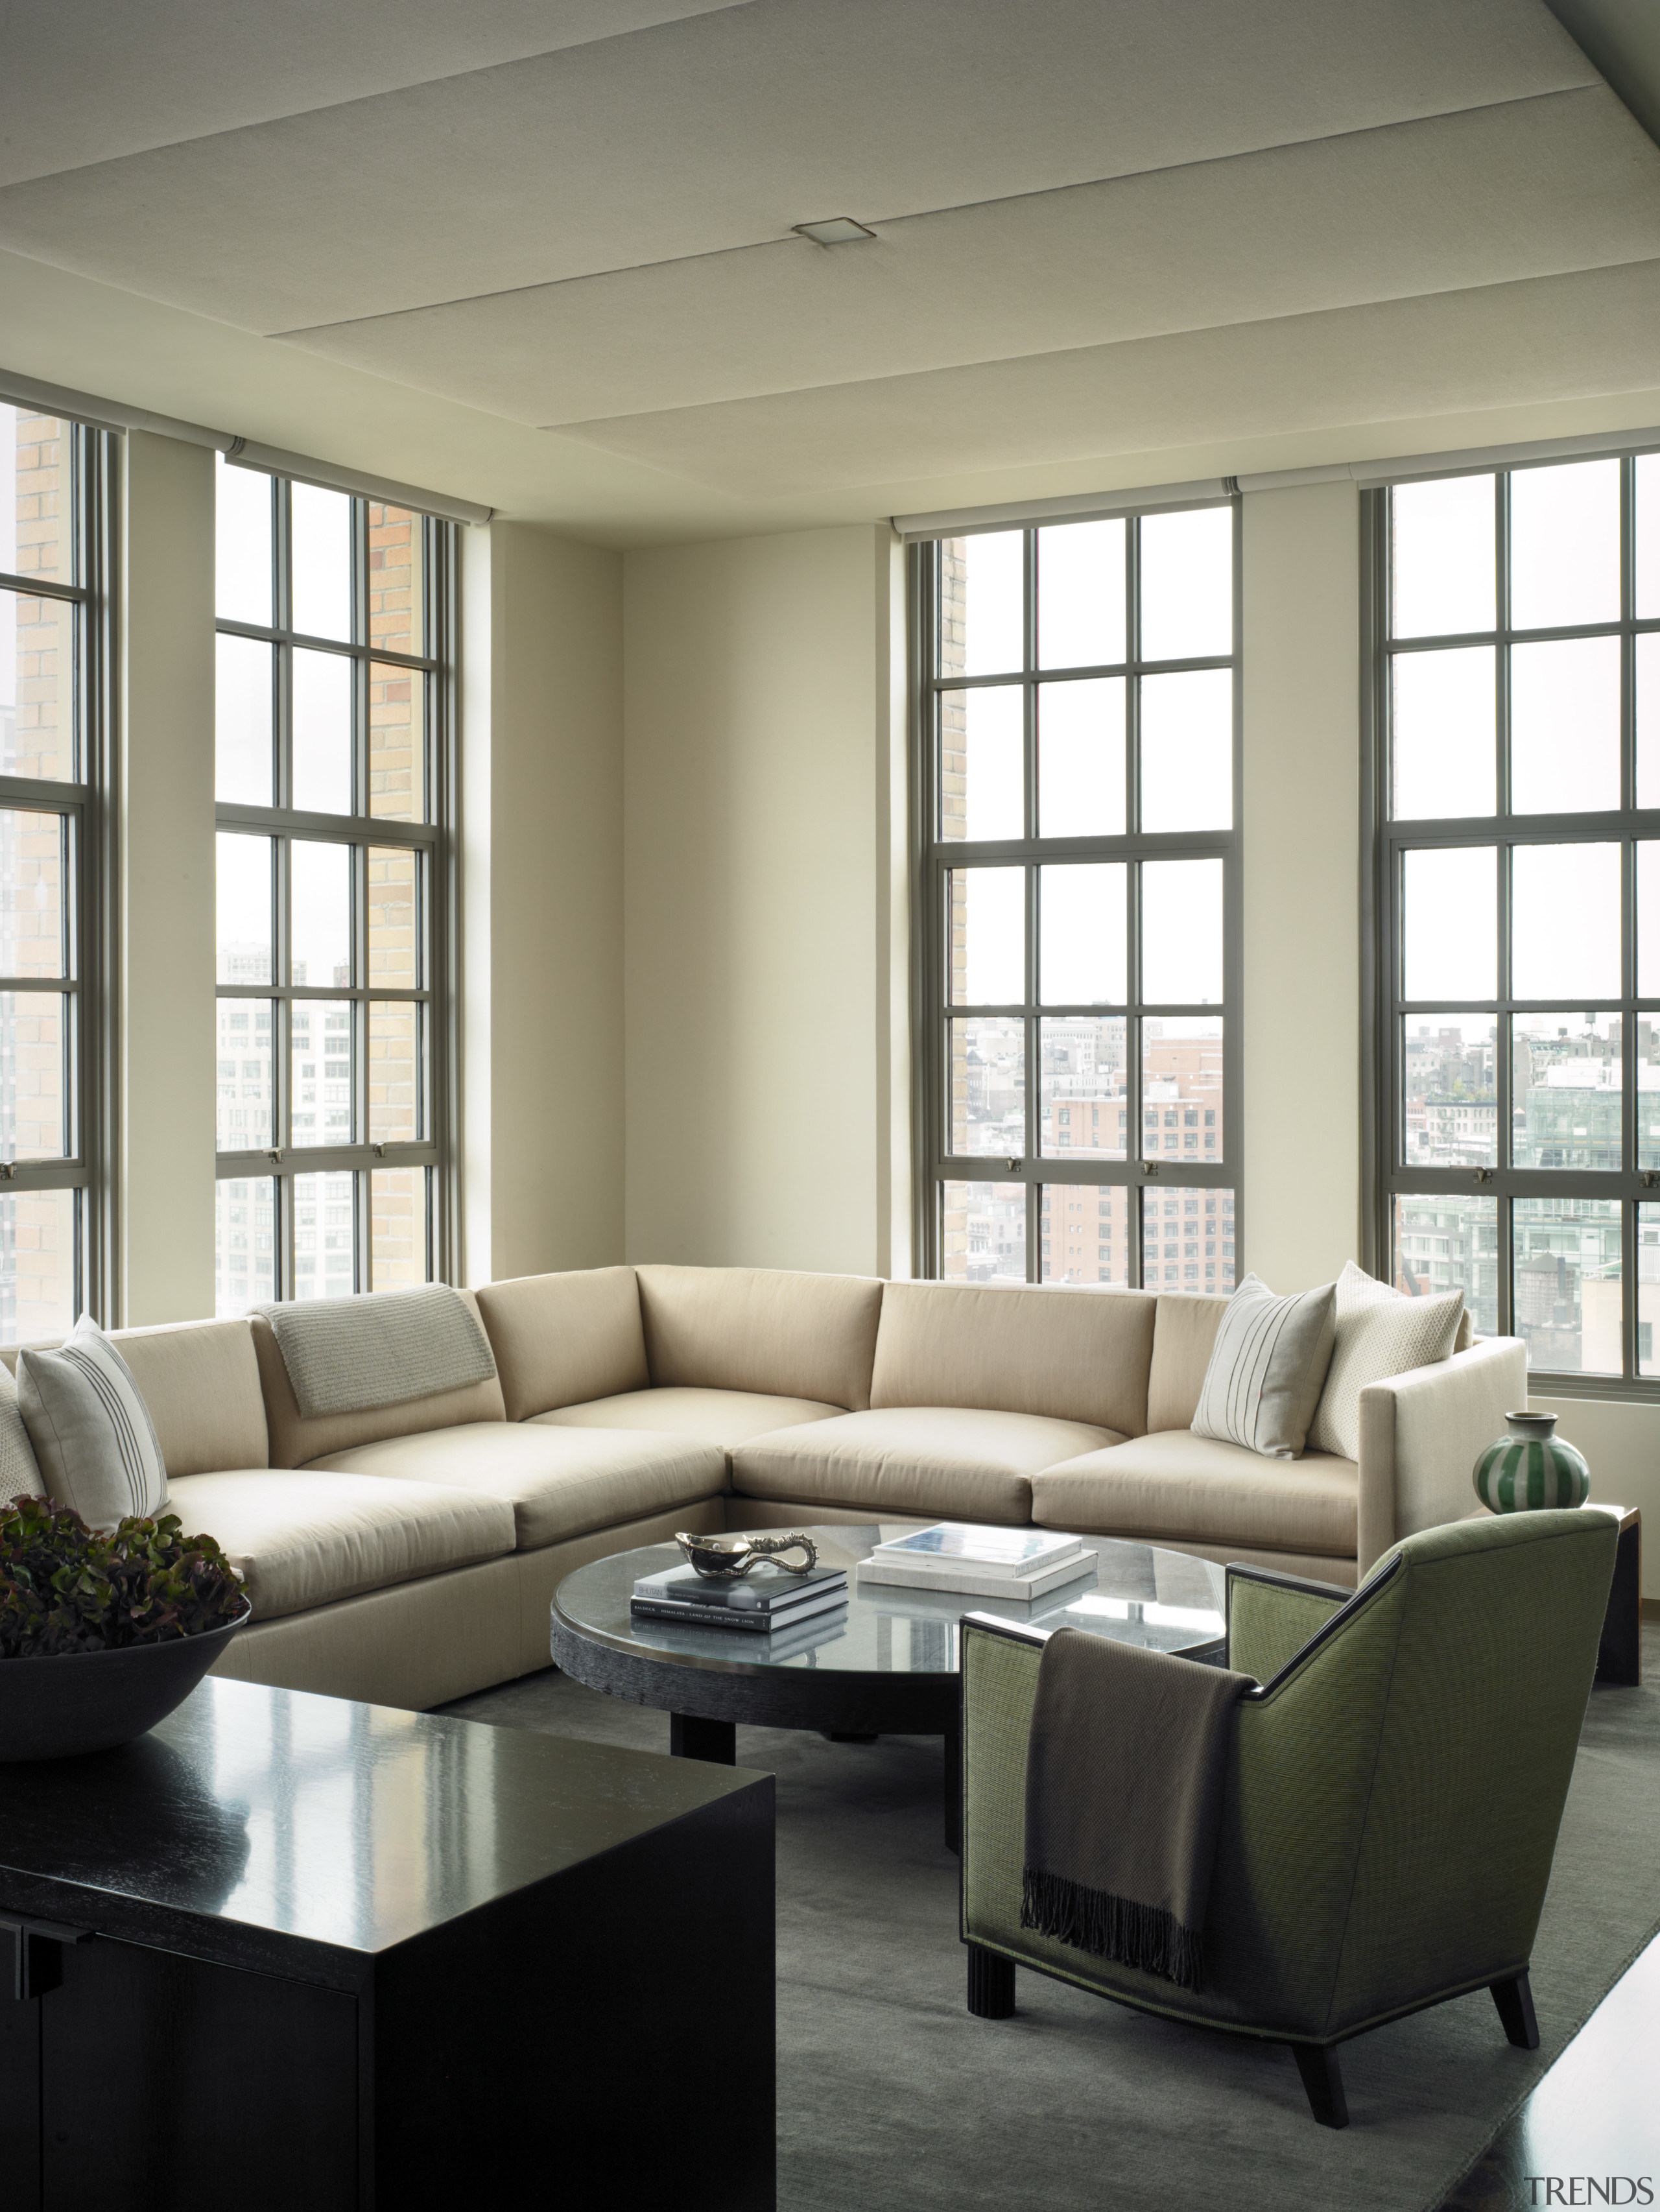 View of this contemporary apartment that has been ceiling, chair, couch, daylighting, furniture, home, interior design, living room, loveseat, room, table, window, window covering, window treatment, gray, white